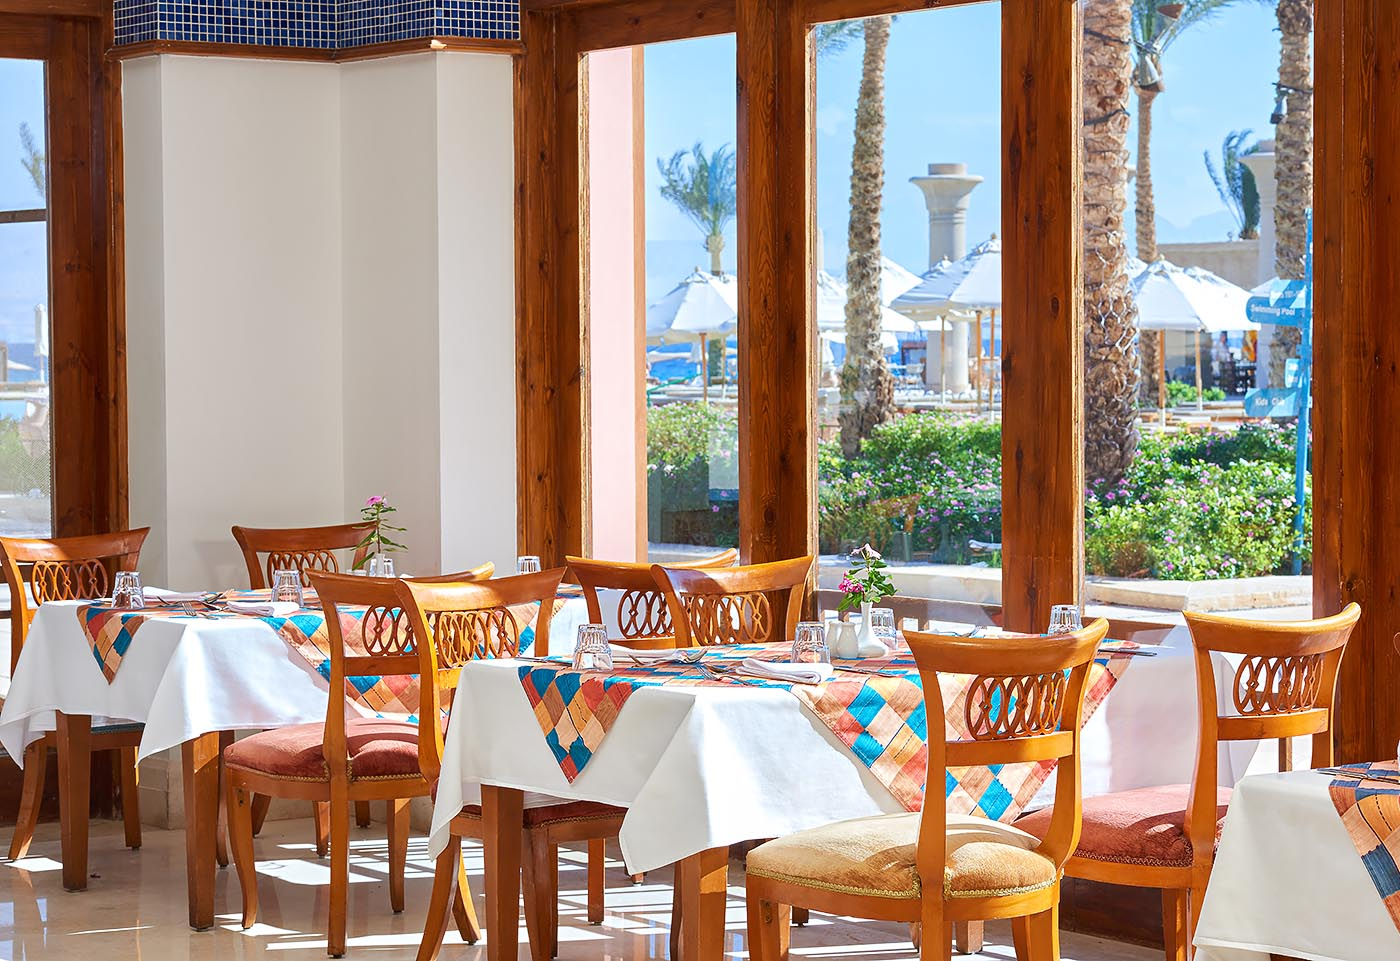 Sofitel Taba beach resort mediterranean Restaurant - Mohamed Abdel-Hady Photography